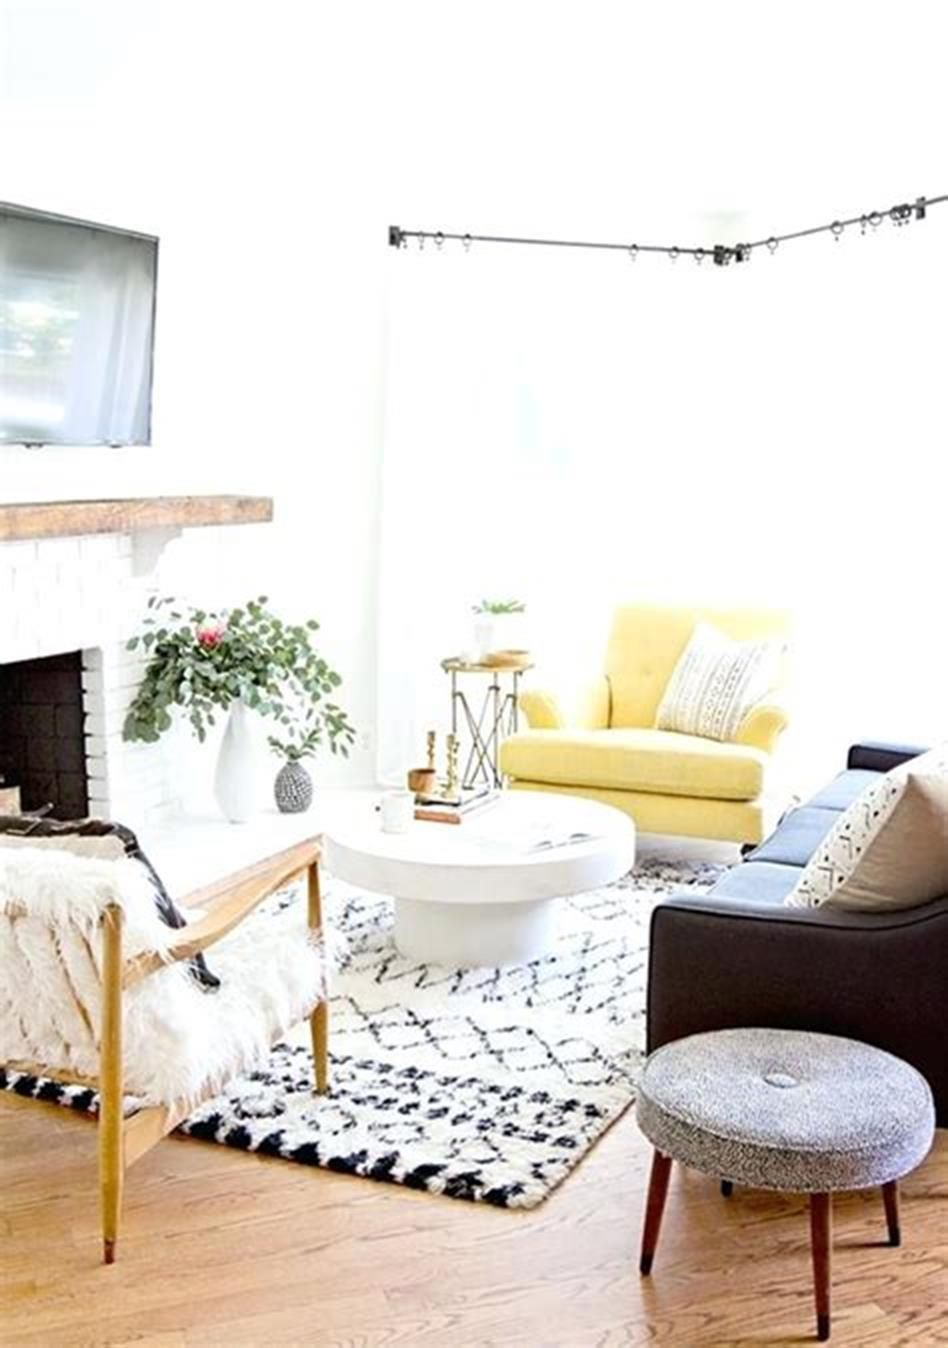 29 Perfect Small Living Room Arrangement Ideas You Will Love 17 Comedecor Living Room Without Sofa Small Living Rooms Small Living Room Chairs